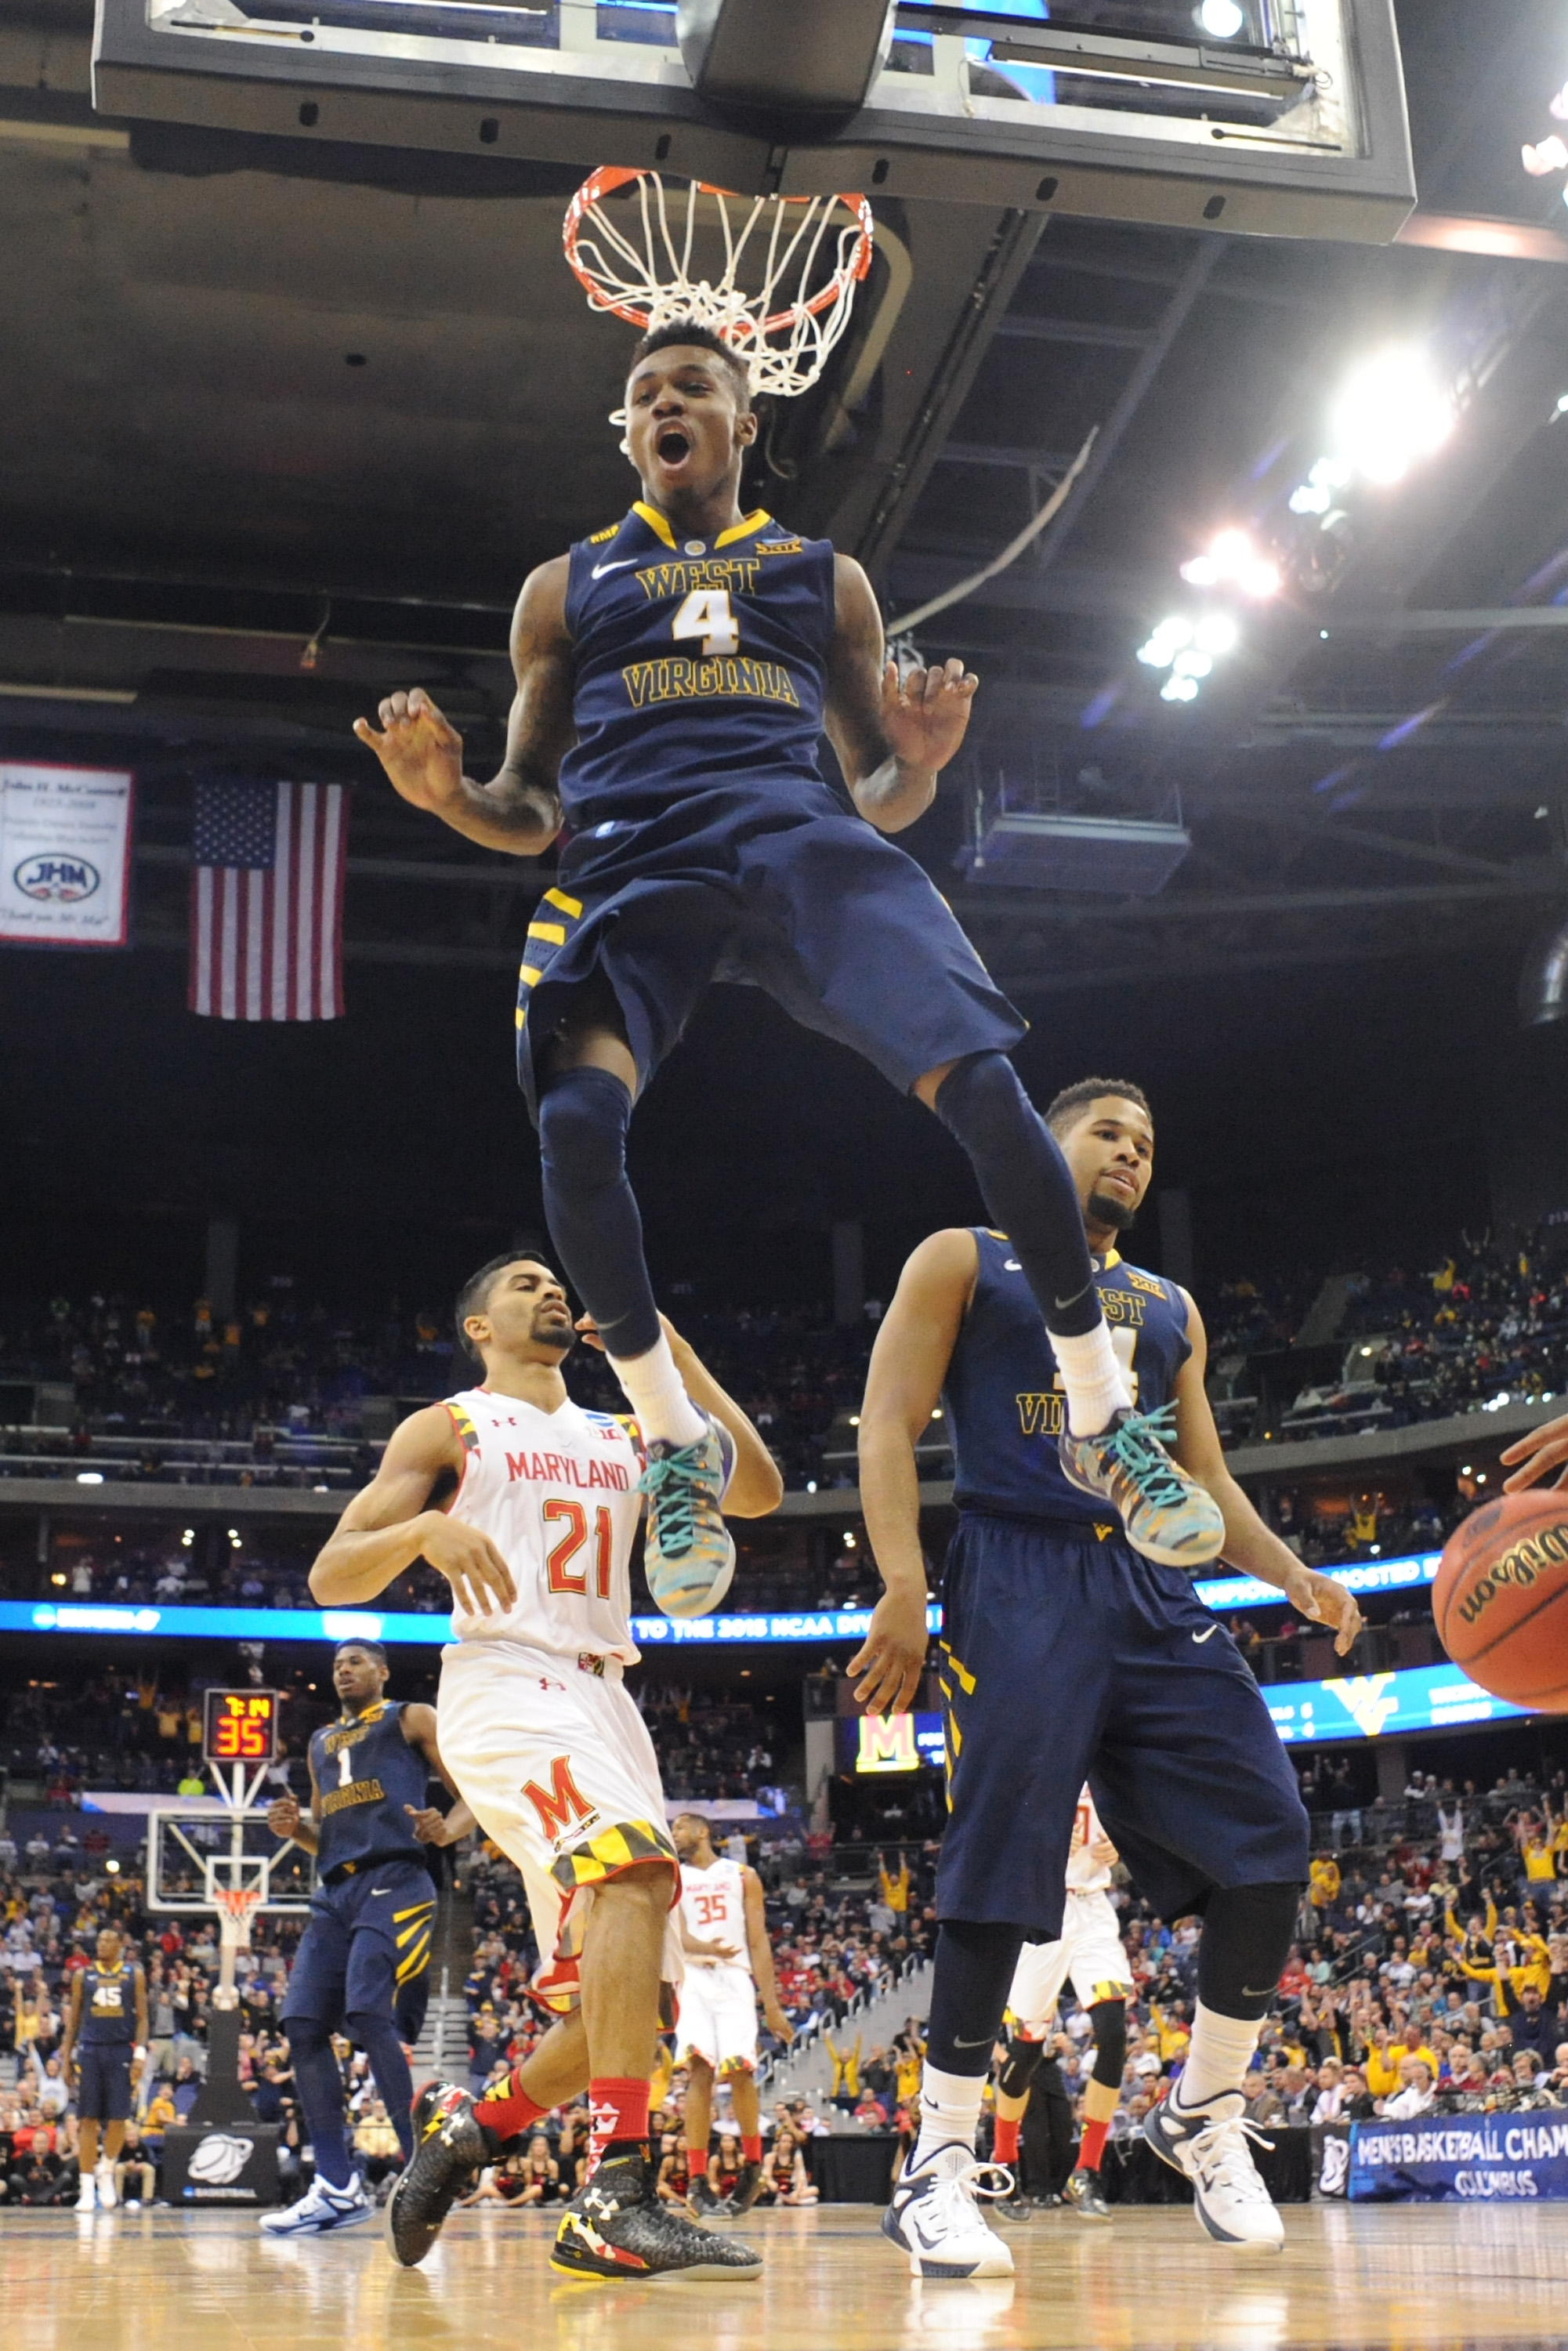 Daxter Miles Jr. #4 of the West Virginia Mountaineers reacts after dunking the ball during the third round of the 2015 NCAA Men's Basketball Tournament on March 22, 2015 at Nationwide Arena in Columbus, Ohio.